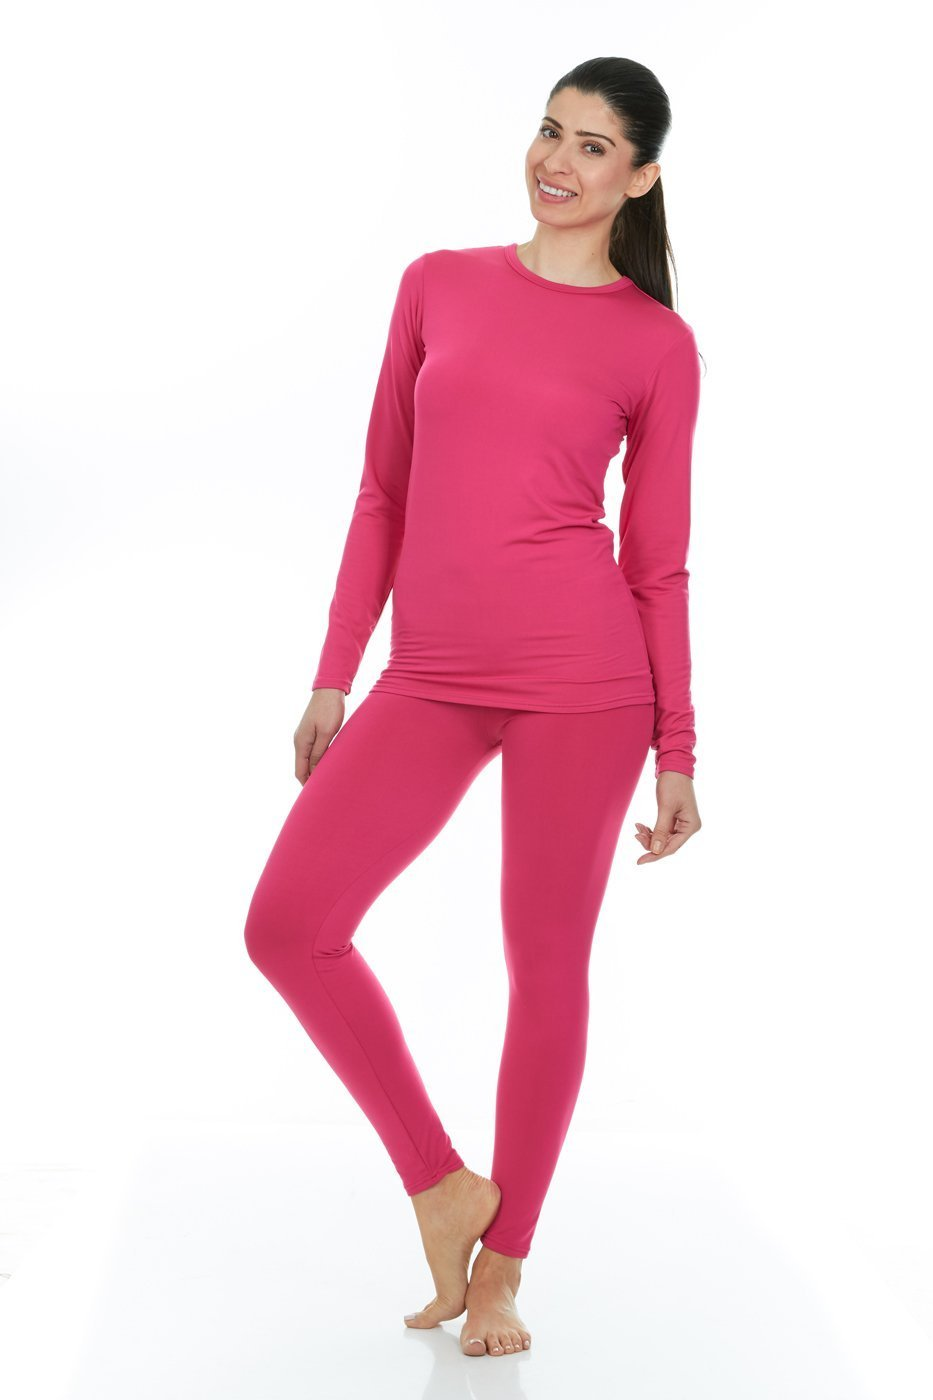 Thermajane Women's Ultra Soft Thermal Underwear Long Johns Set with Fleece Lined (X-Large, Pink) by Thermajane